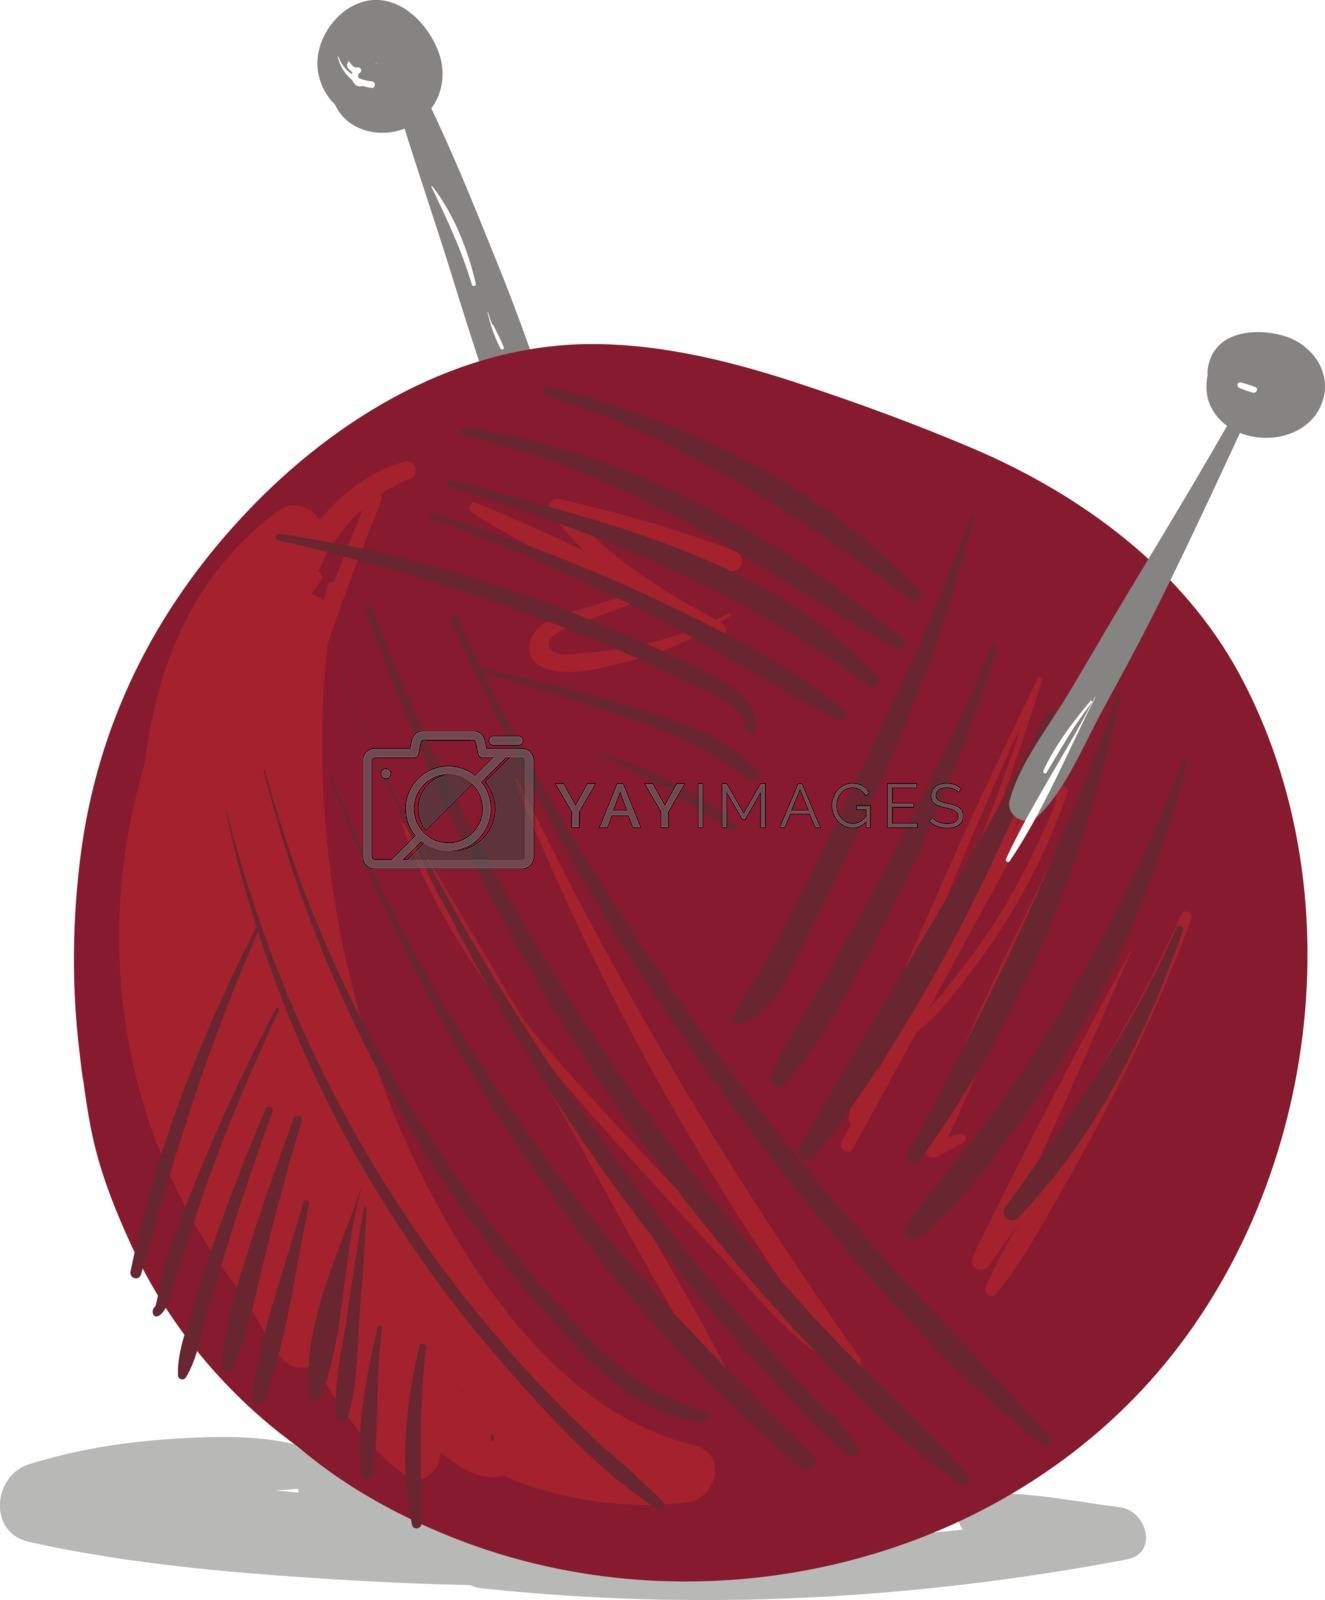 Royalty free image of Clipart of a red-colored wool ball vector or color illustration by Morphart